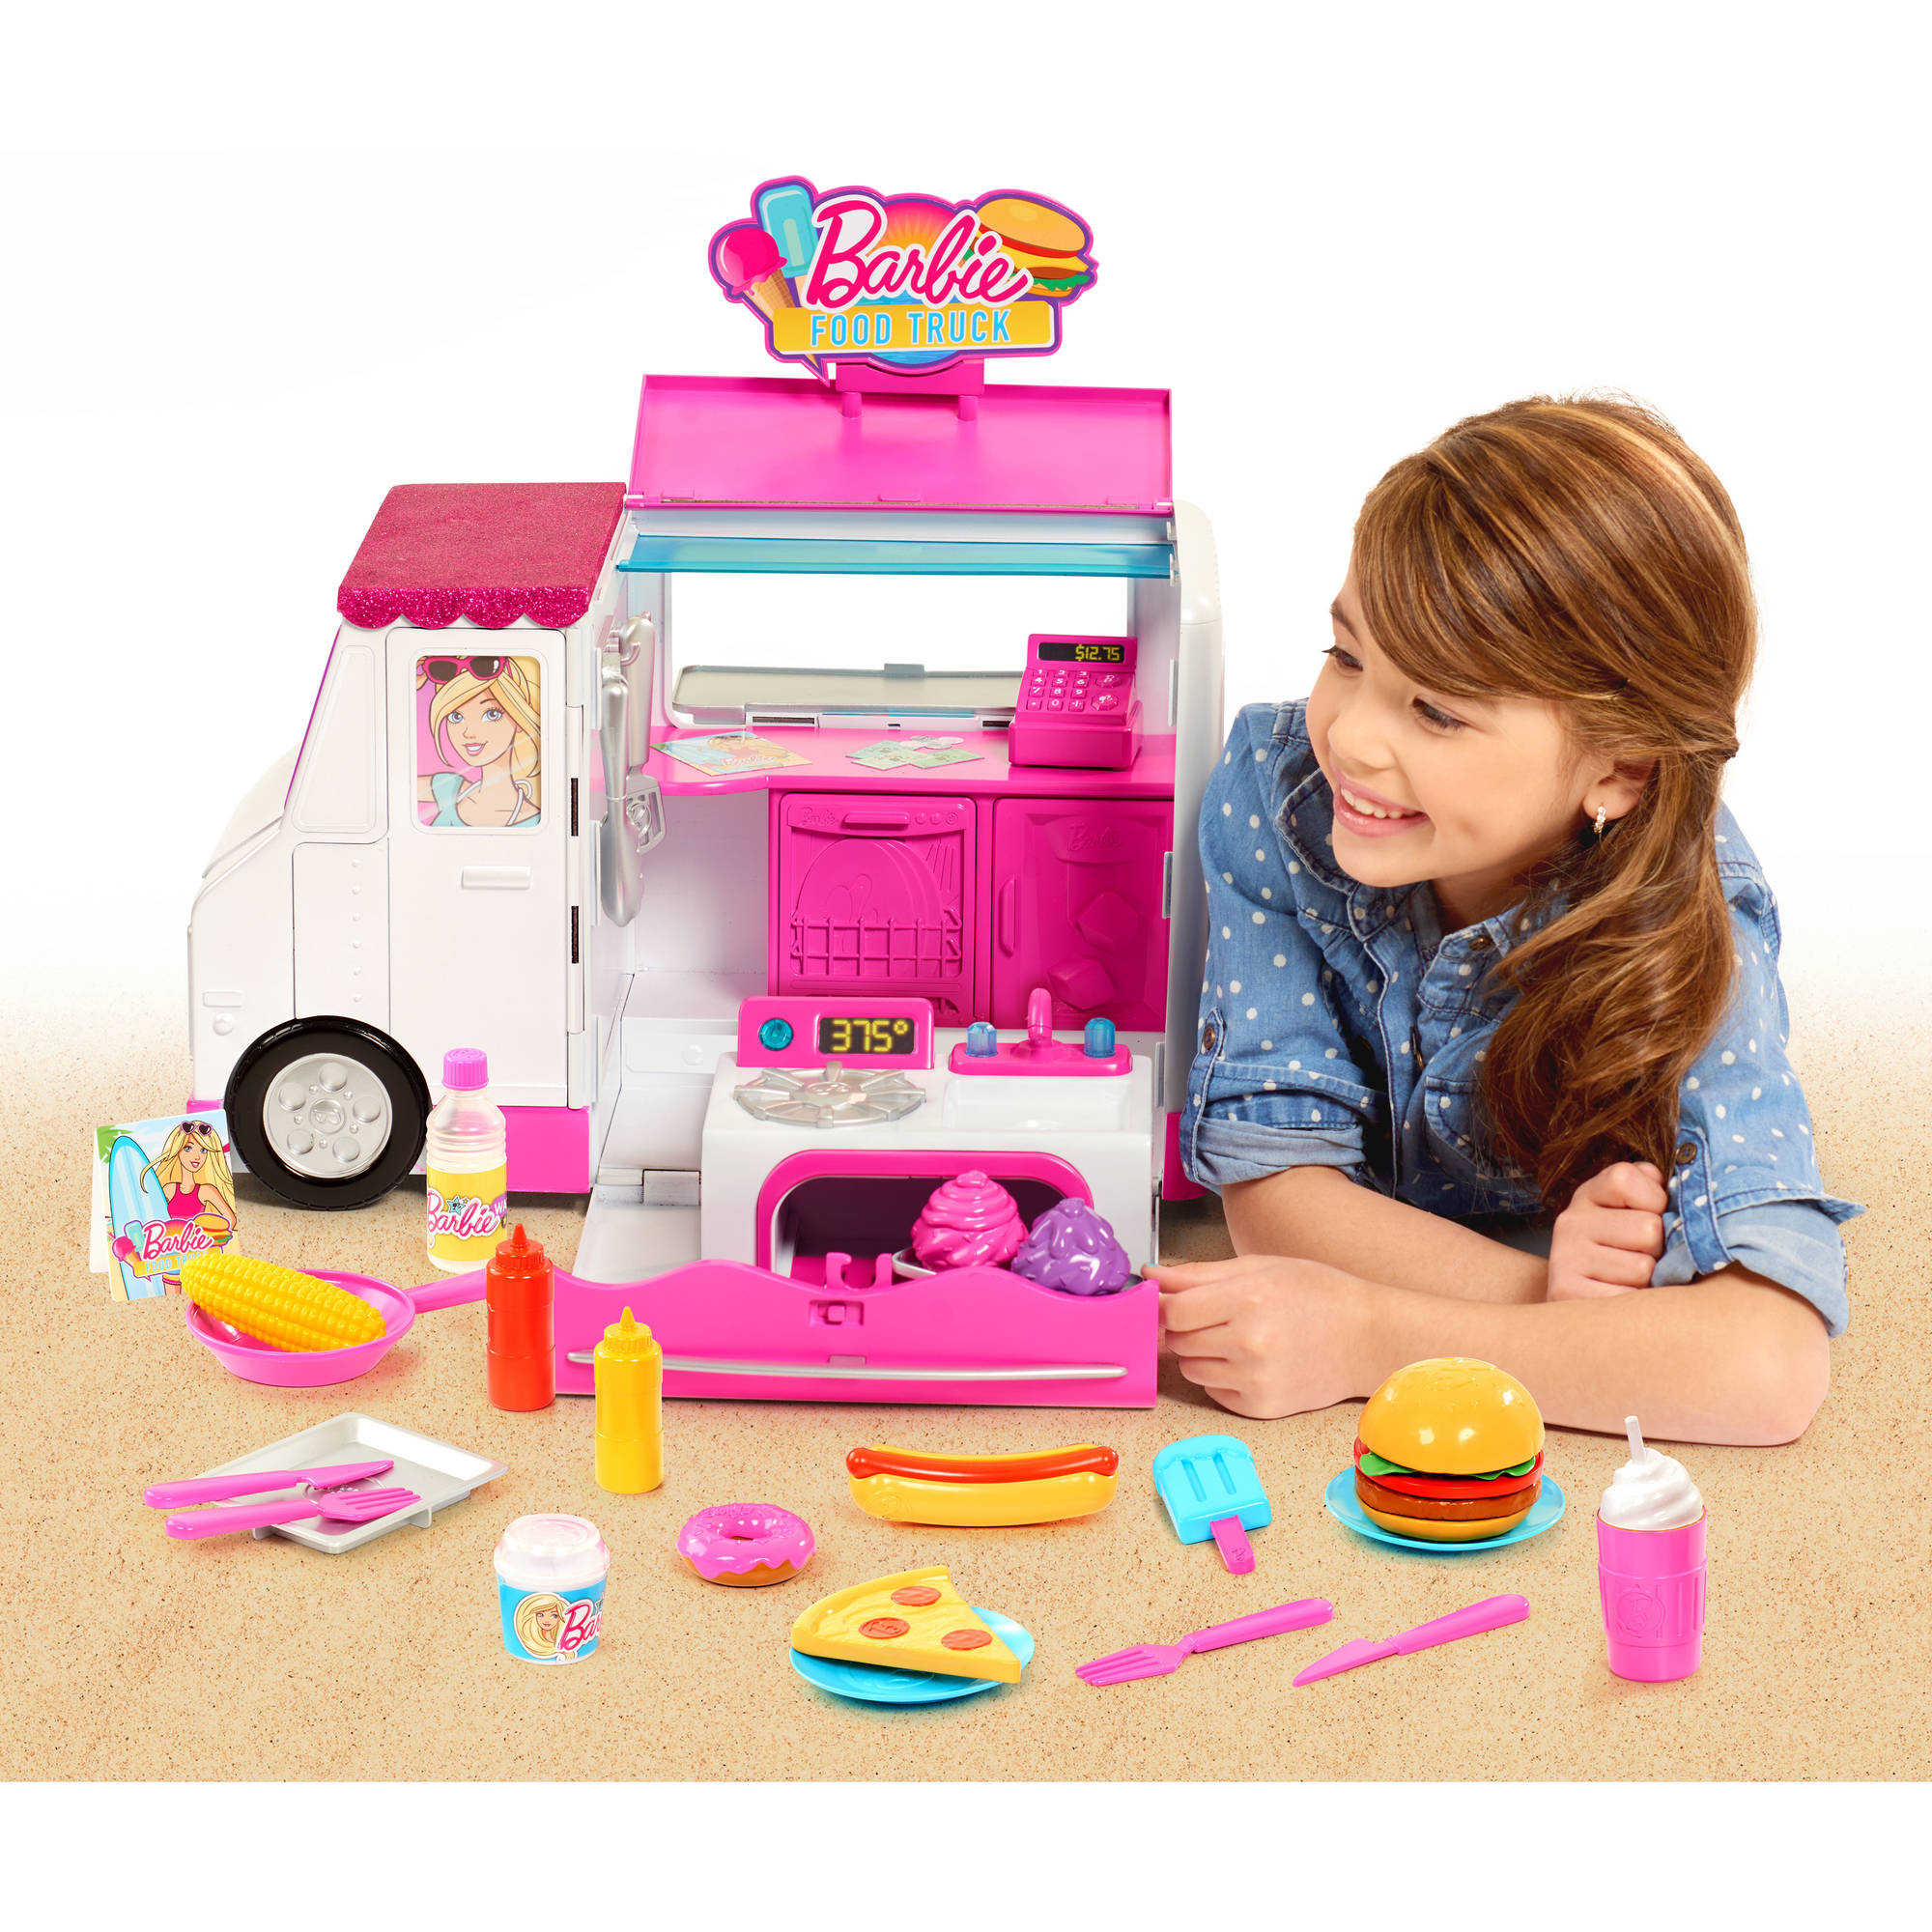 barbie food truck 31 play cooking tools light up oven sizzling grill ebay. Black Bedroom Furniture Sets. Home Design Ideas